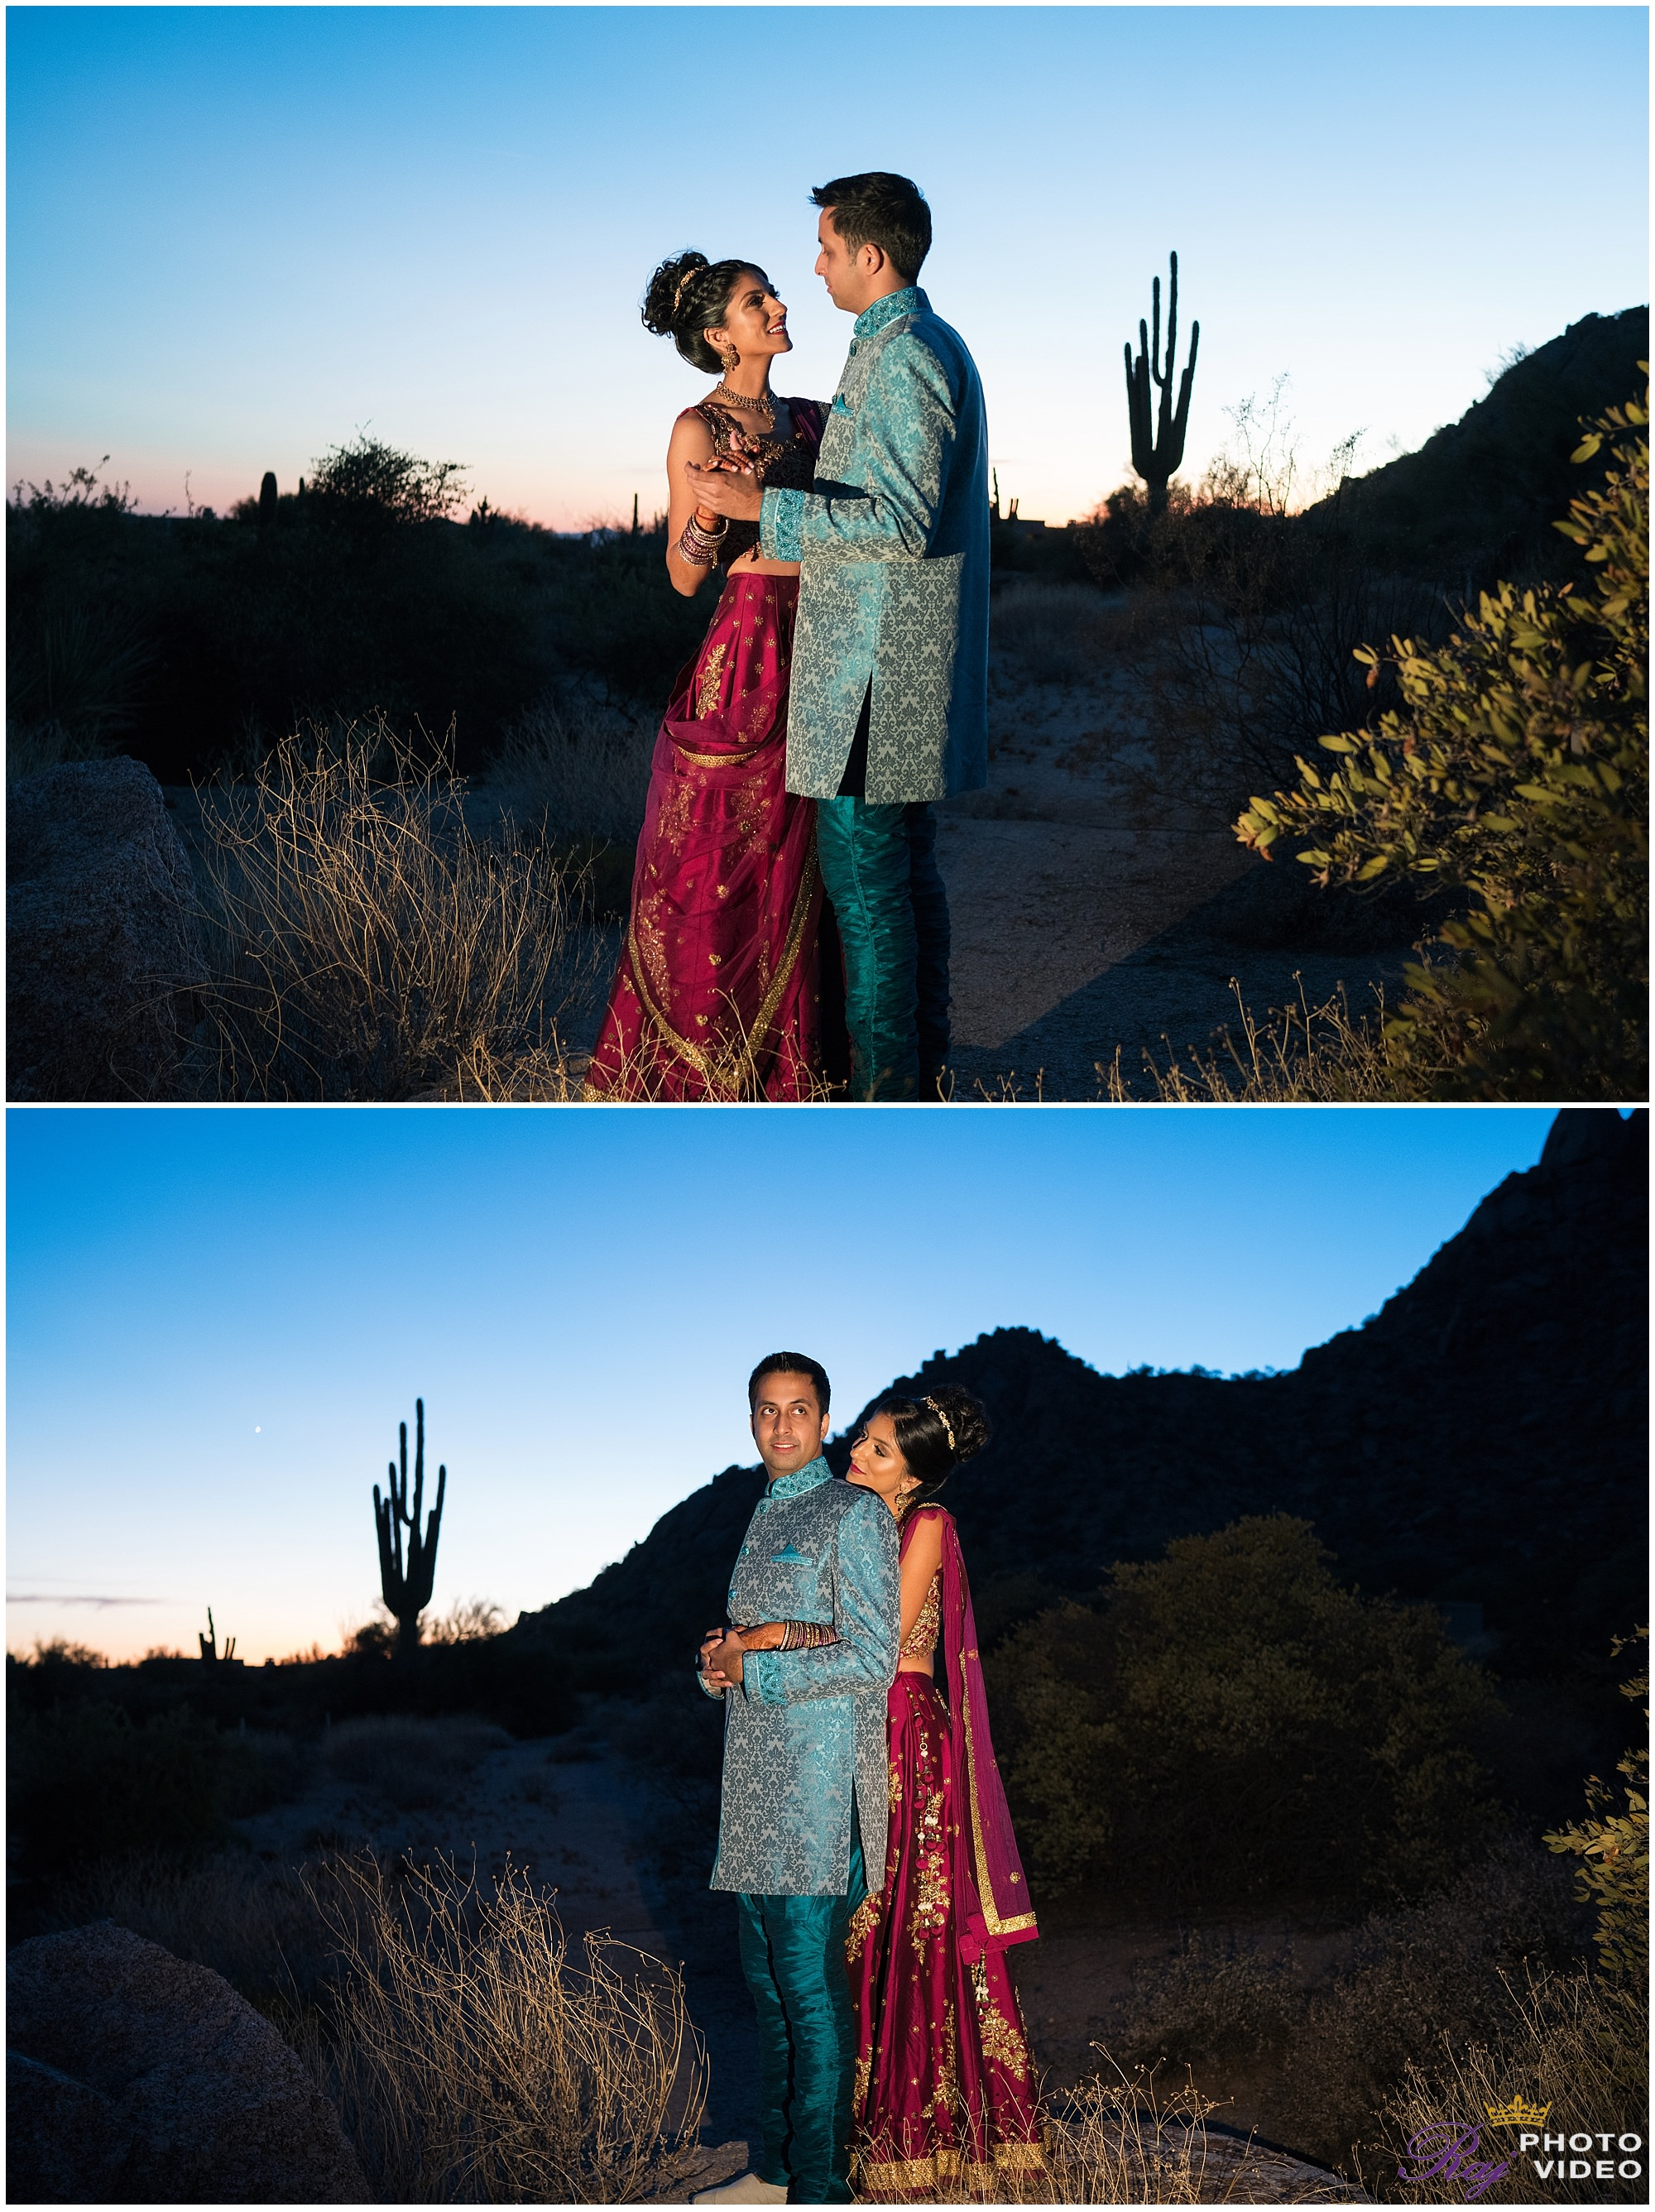 Pinnacle_Peak_Park_Scottsdale_Arizona_Sangeet_Photo_Shoot-3.jpg